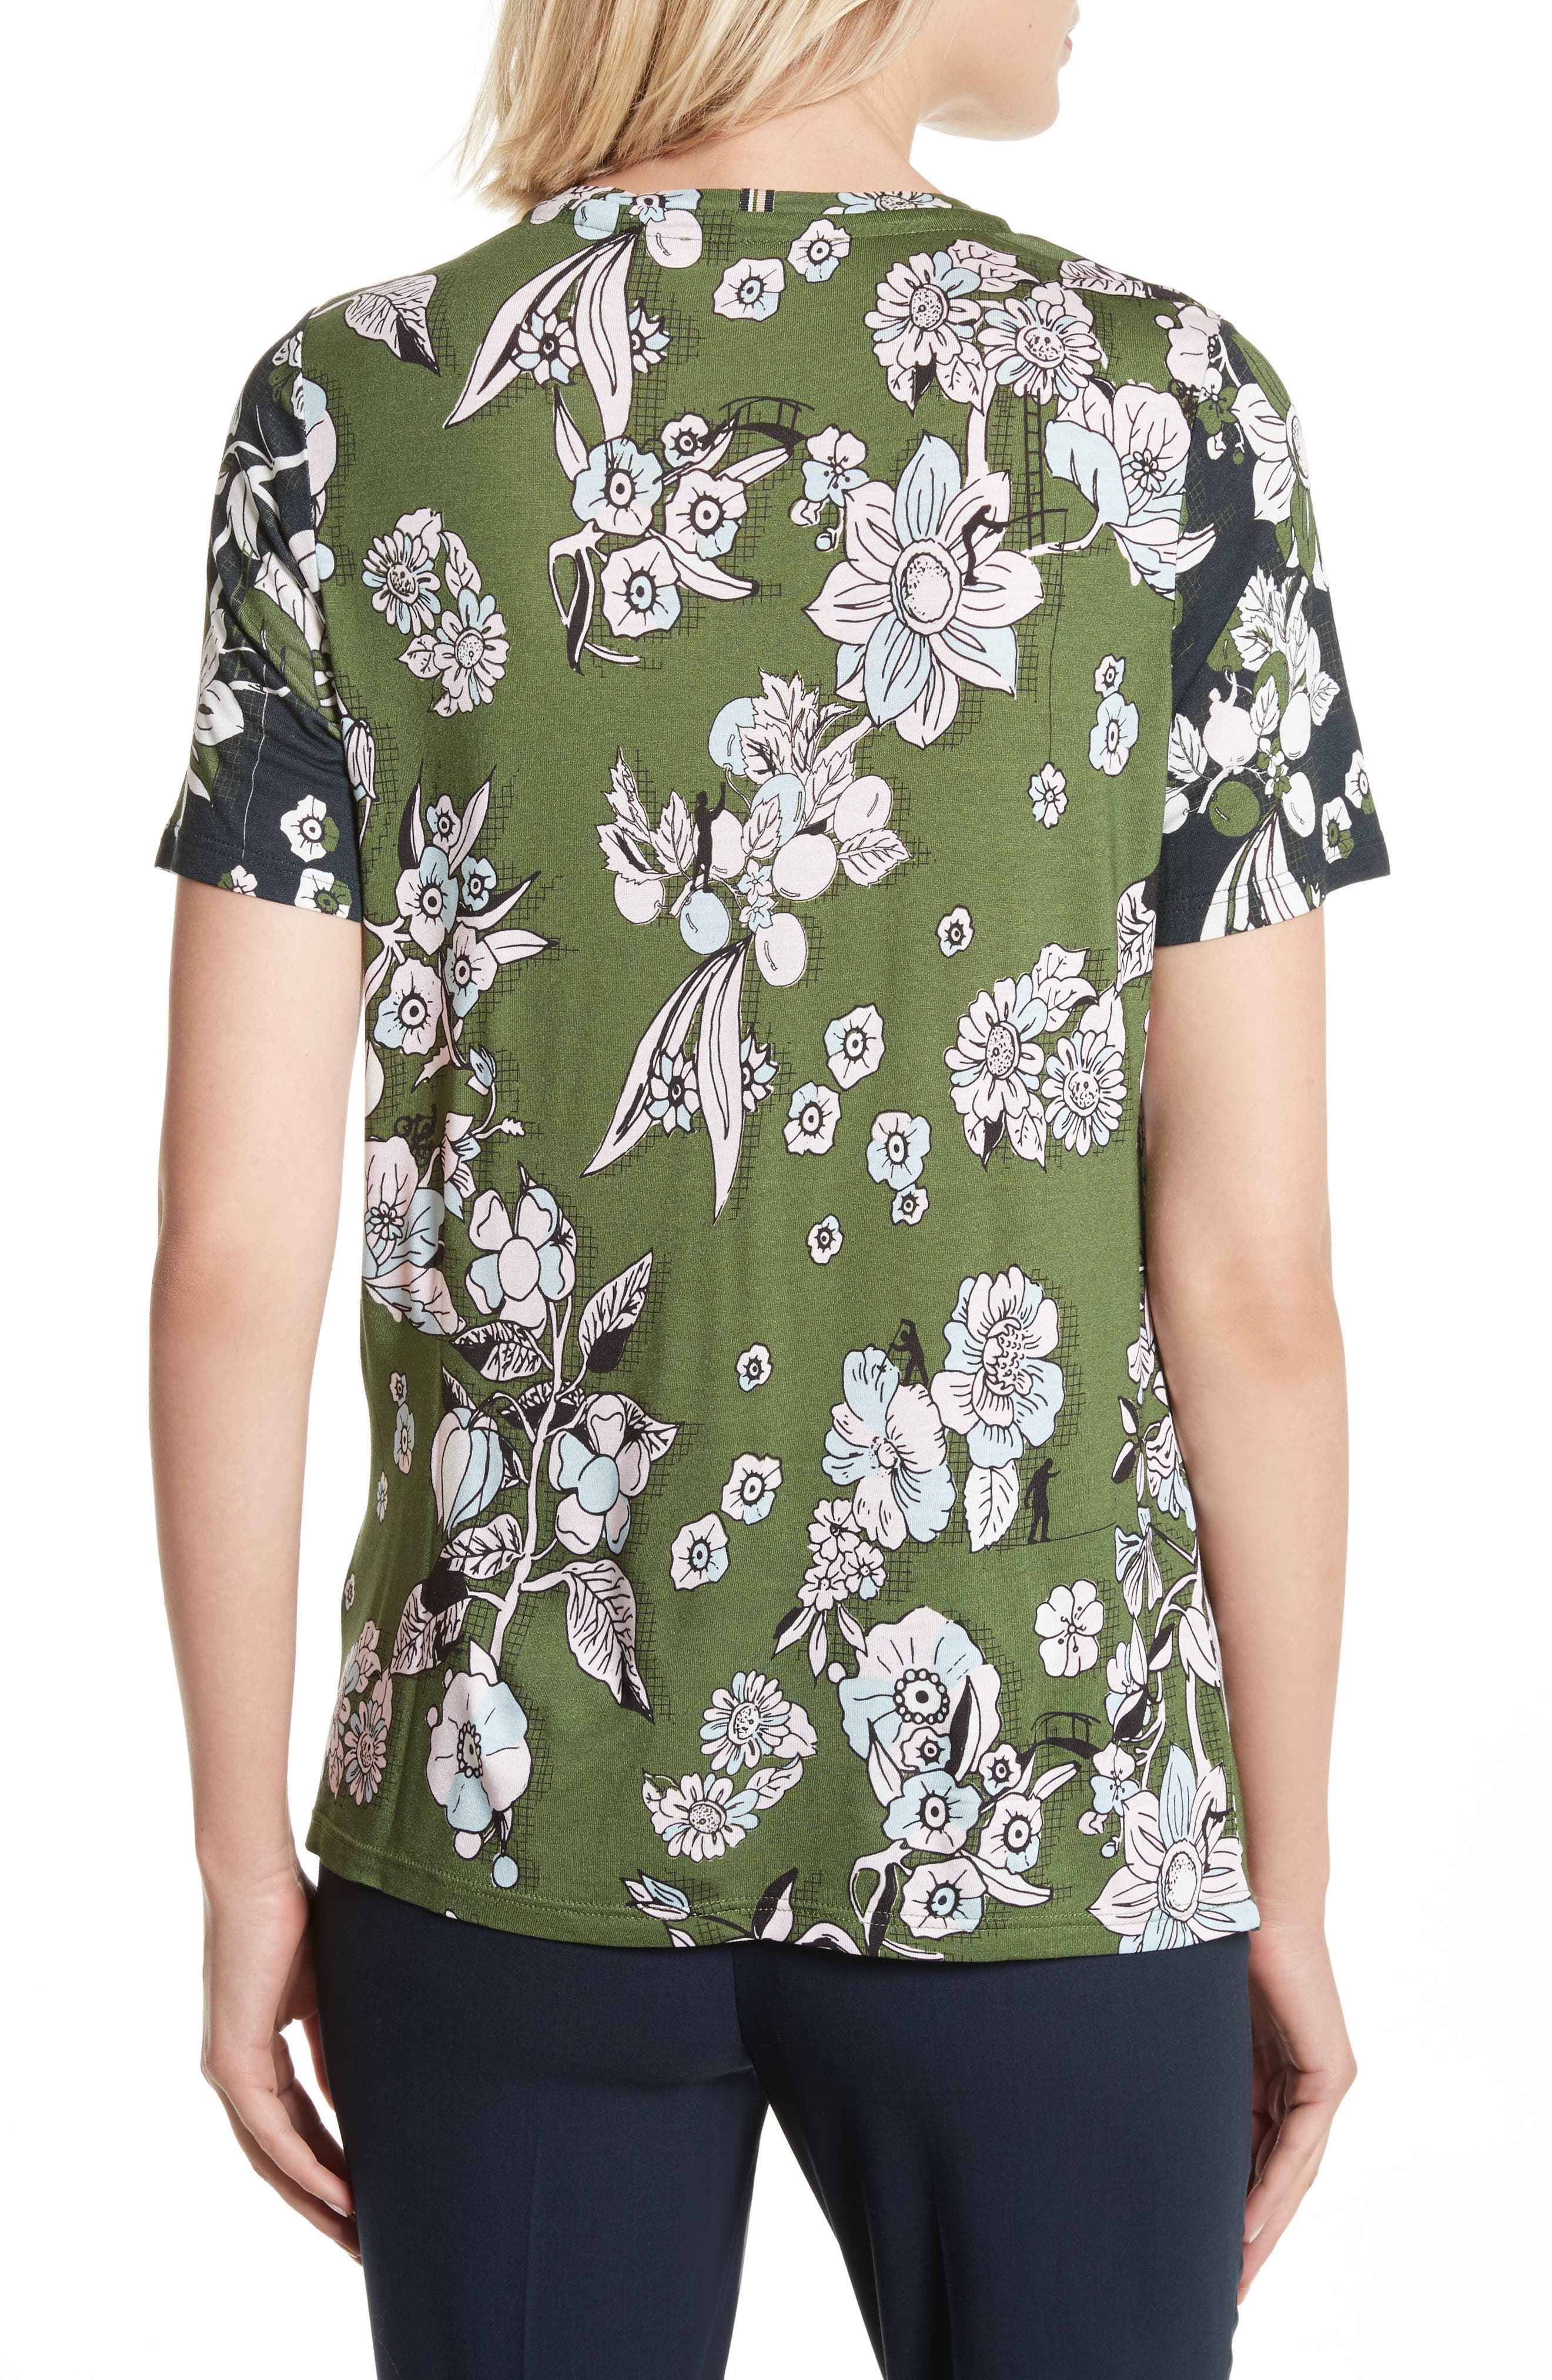 Adren Floral Print Tee,                             Alternate thumbnail 2, color,                             Green